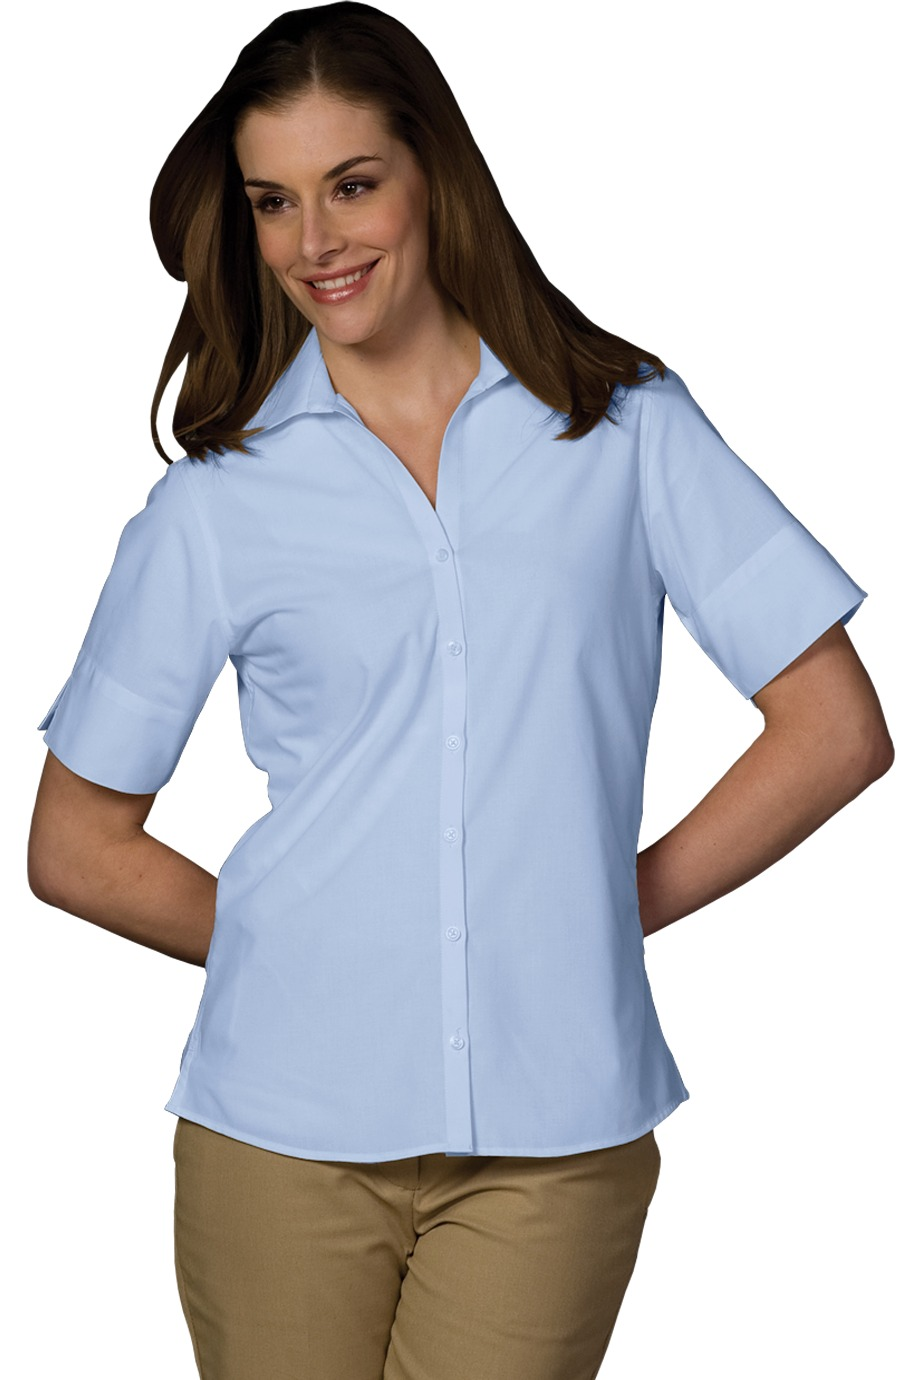 Edwards Garment 5245 - Women's Open Neck Poplin Short Sleeve Blouse